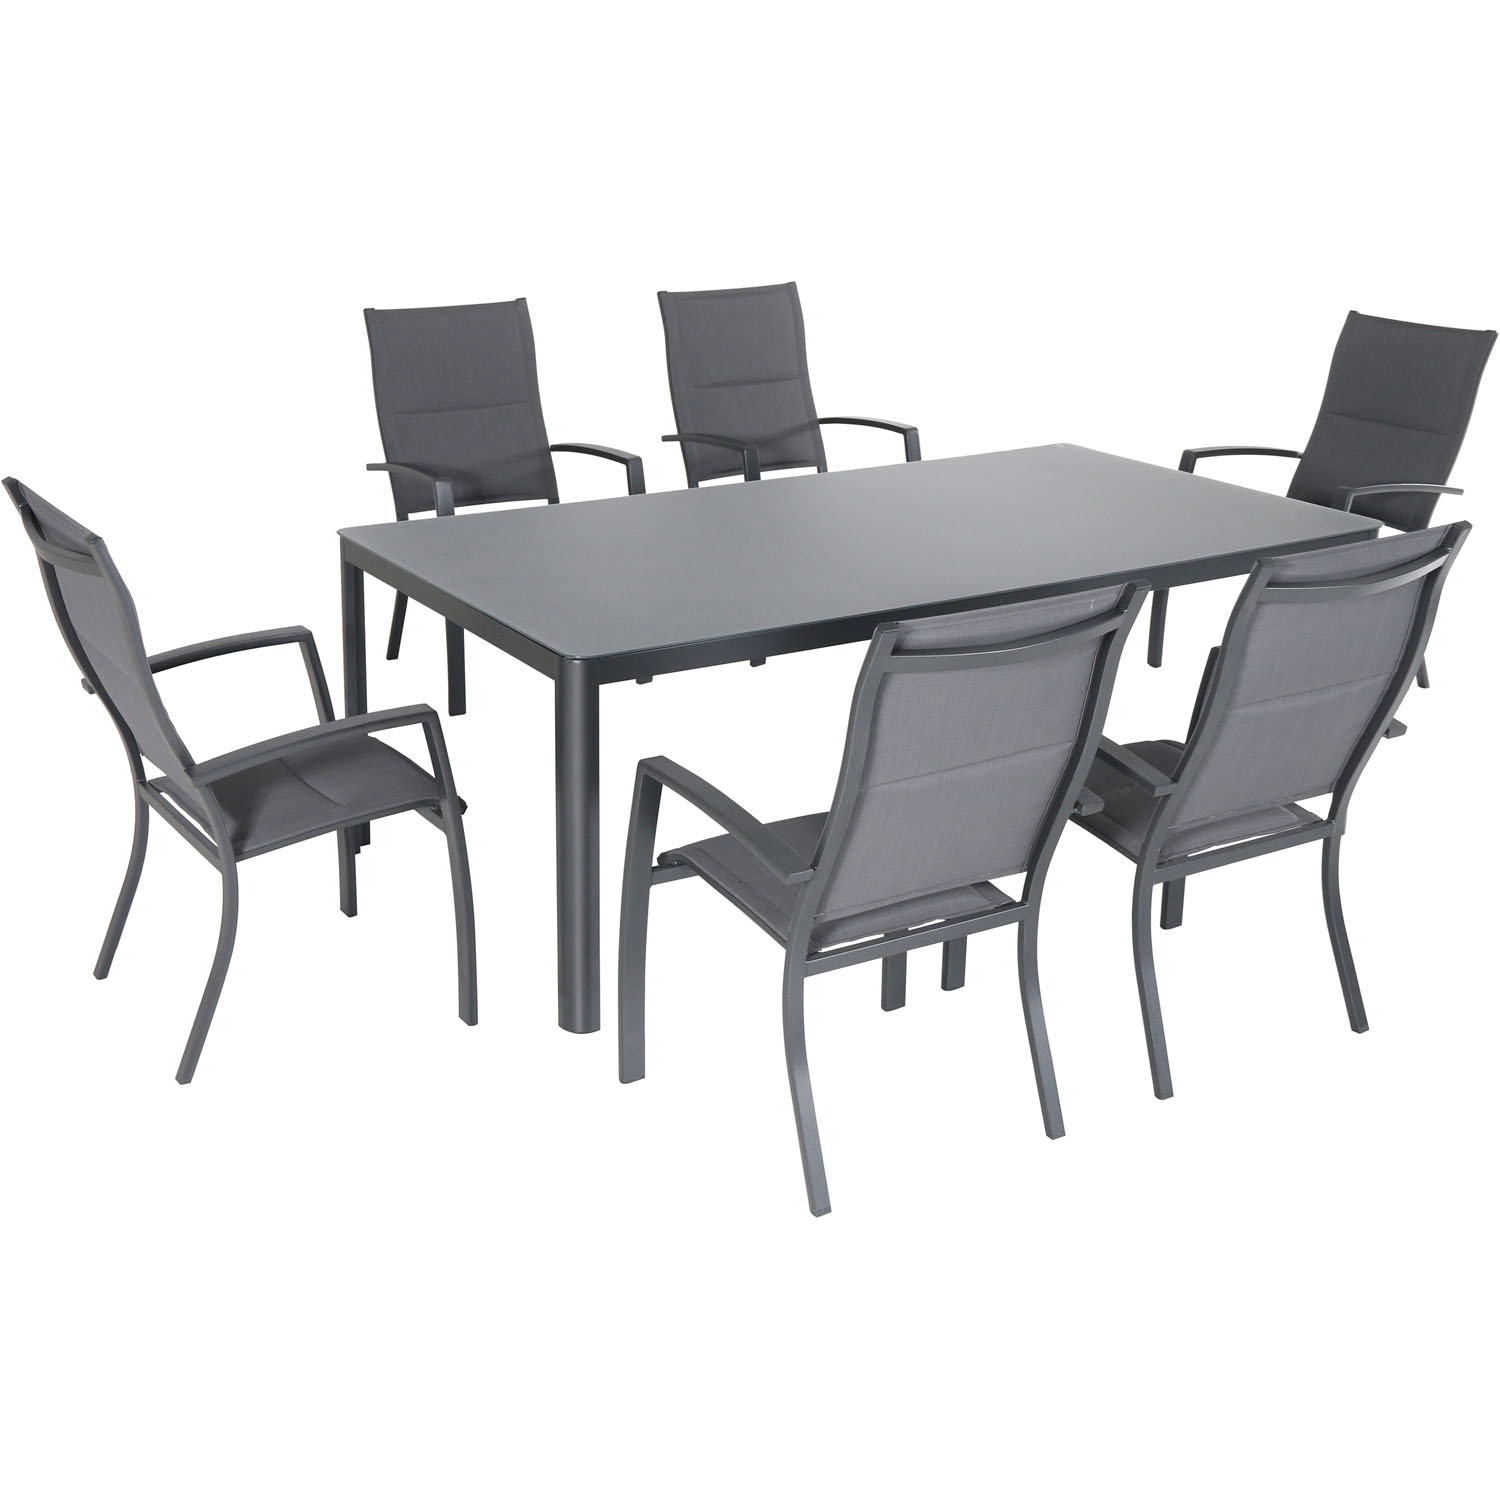 """Hanover Fresno 7-Piece Outdoor Dining Set with 6 Padded Sling Chairs and a 42"""" x 83"""" Glass-Top Table"""